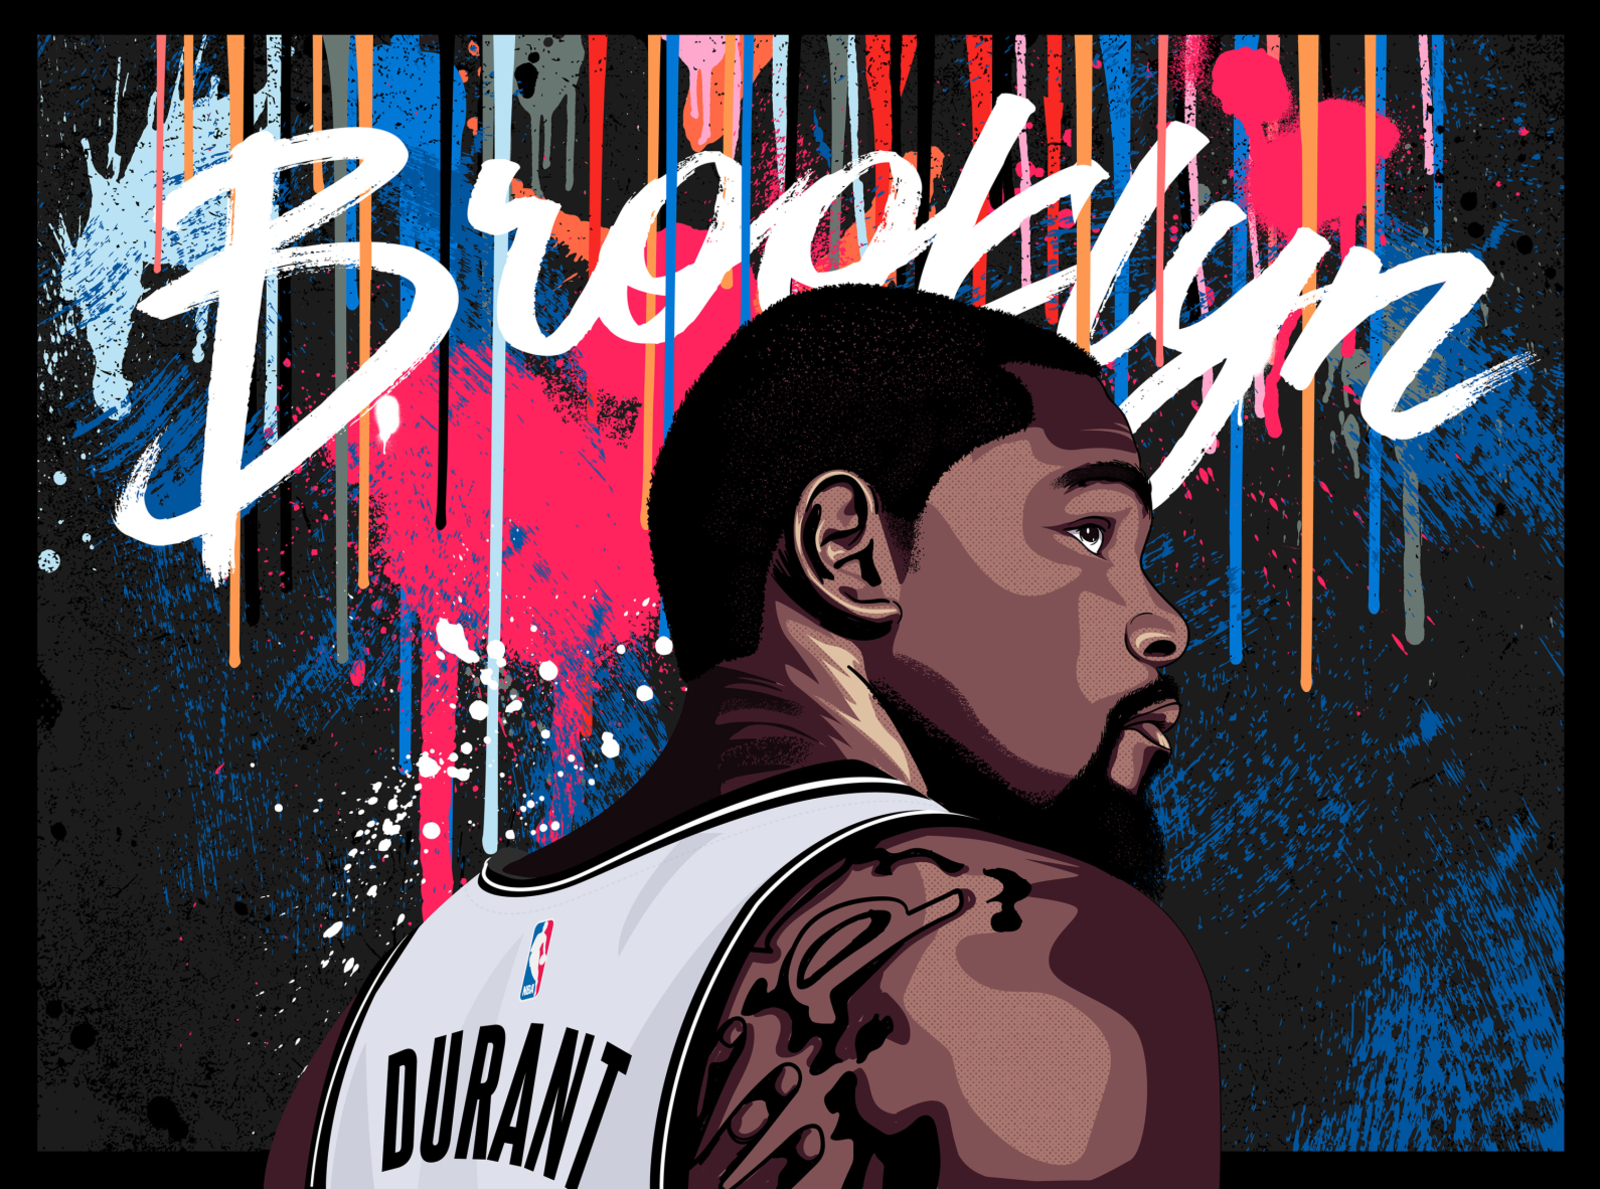 kevin durant kd brooklyn nets by nick